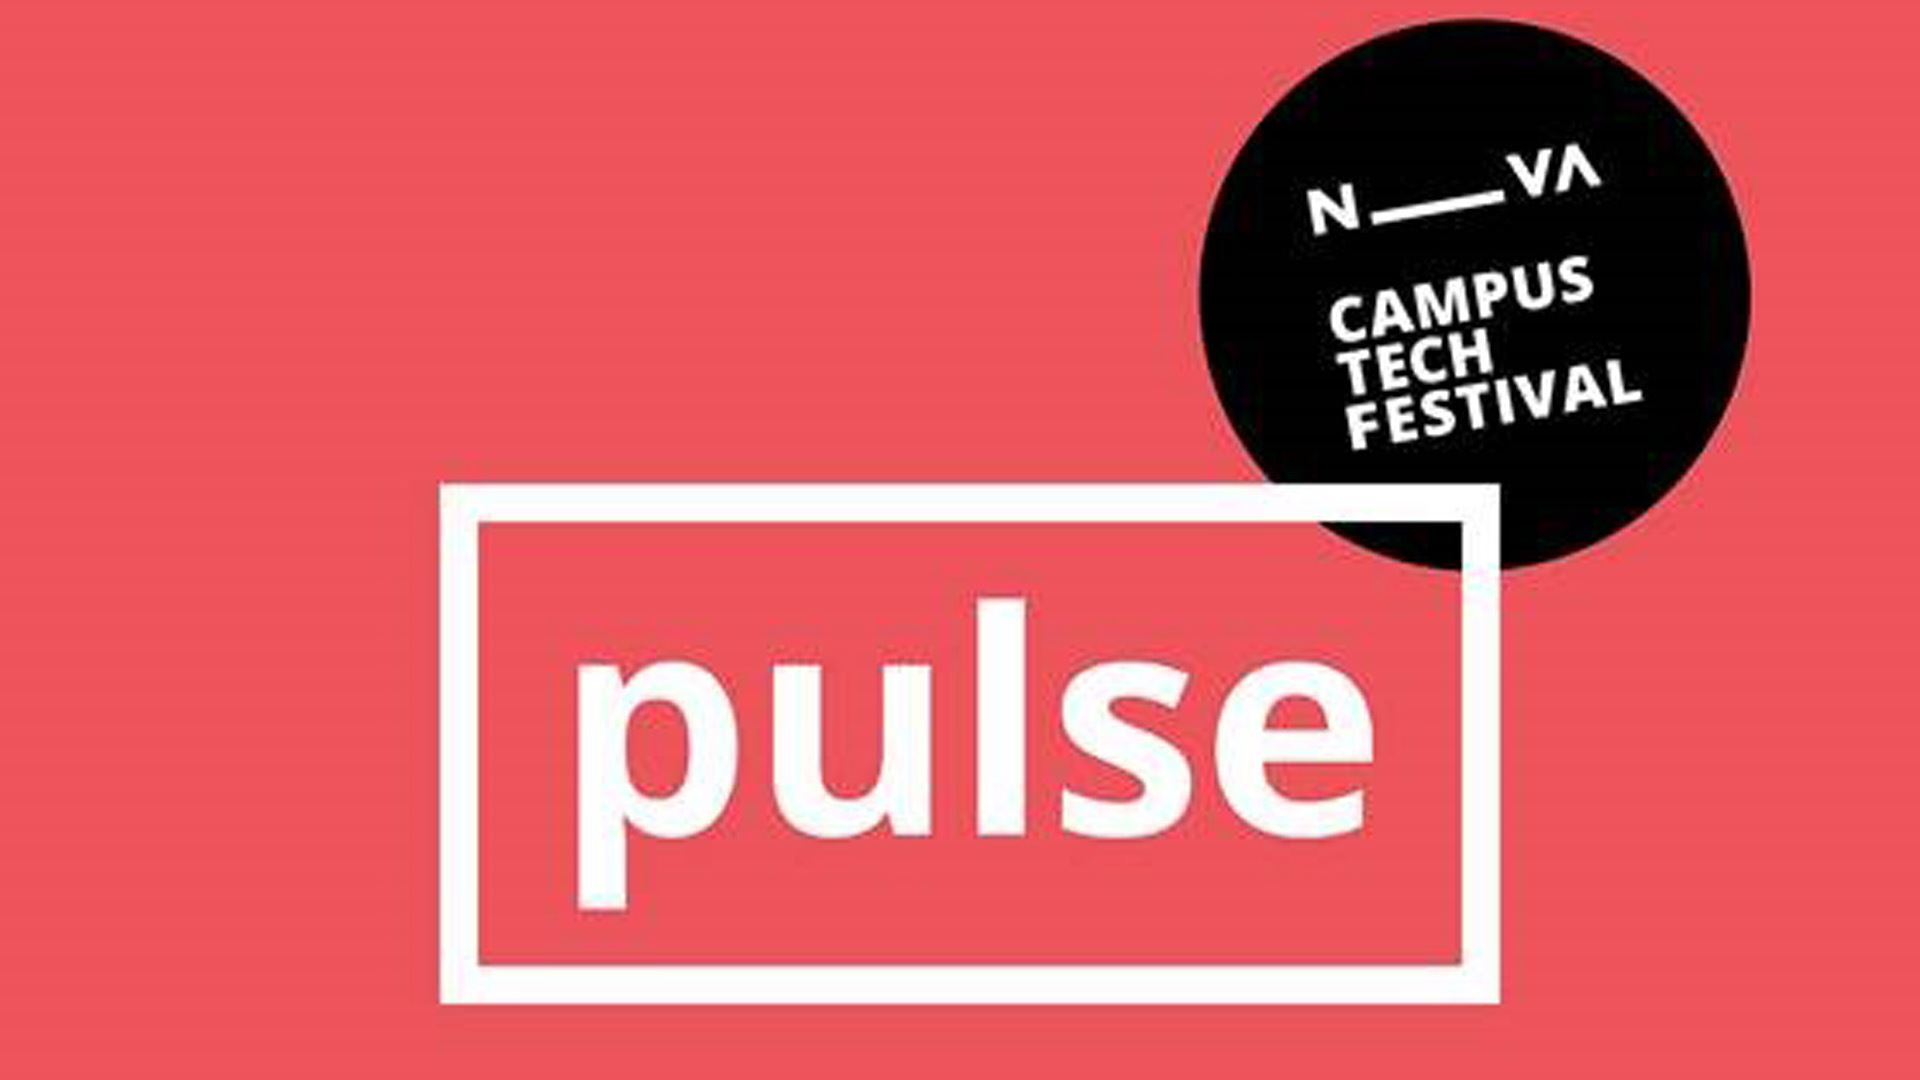 Sessão introdutória: Campus Tech Festival & Pulse